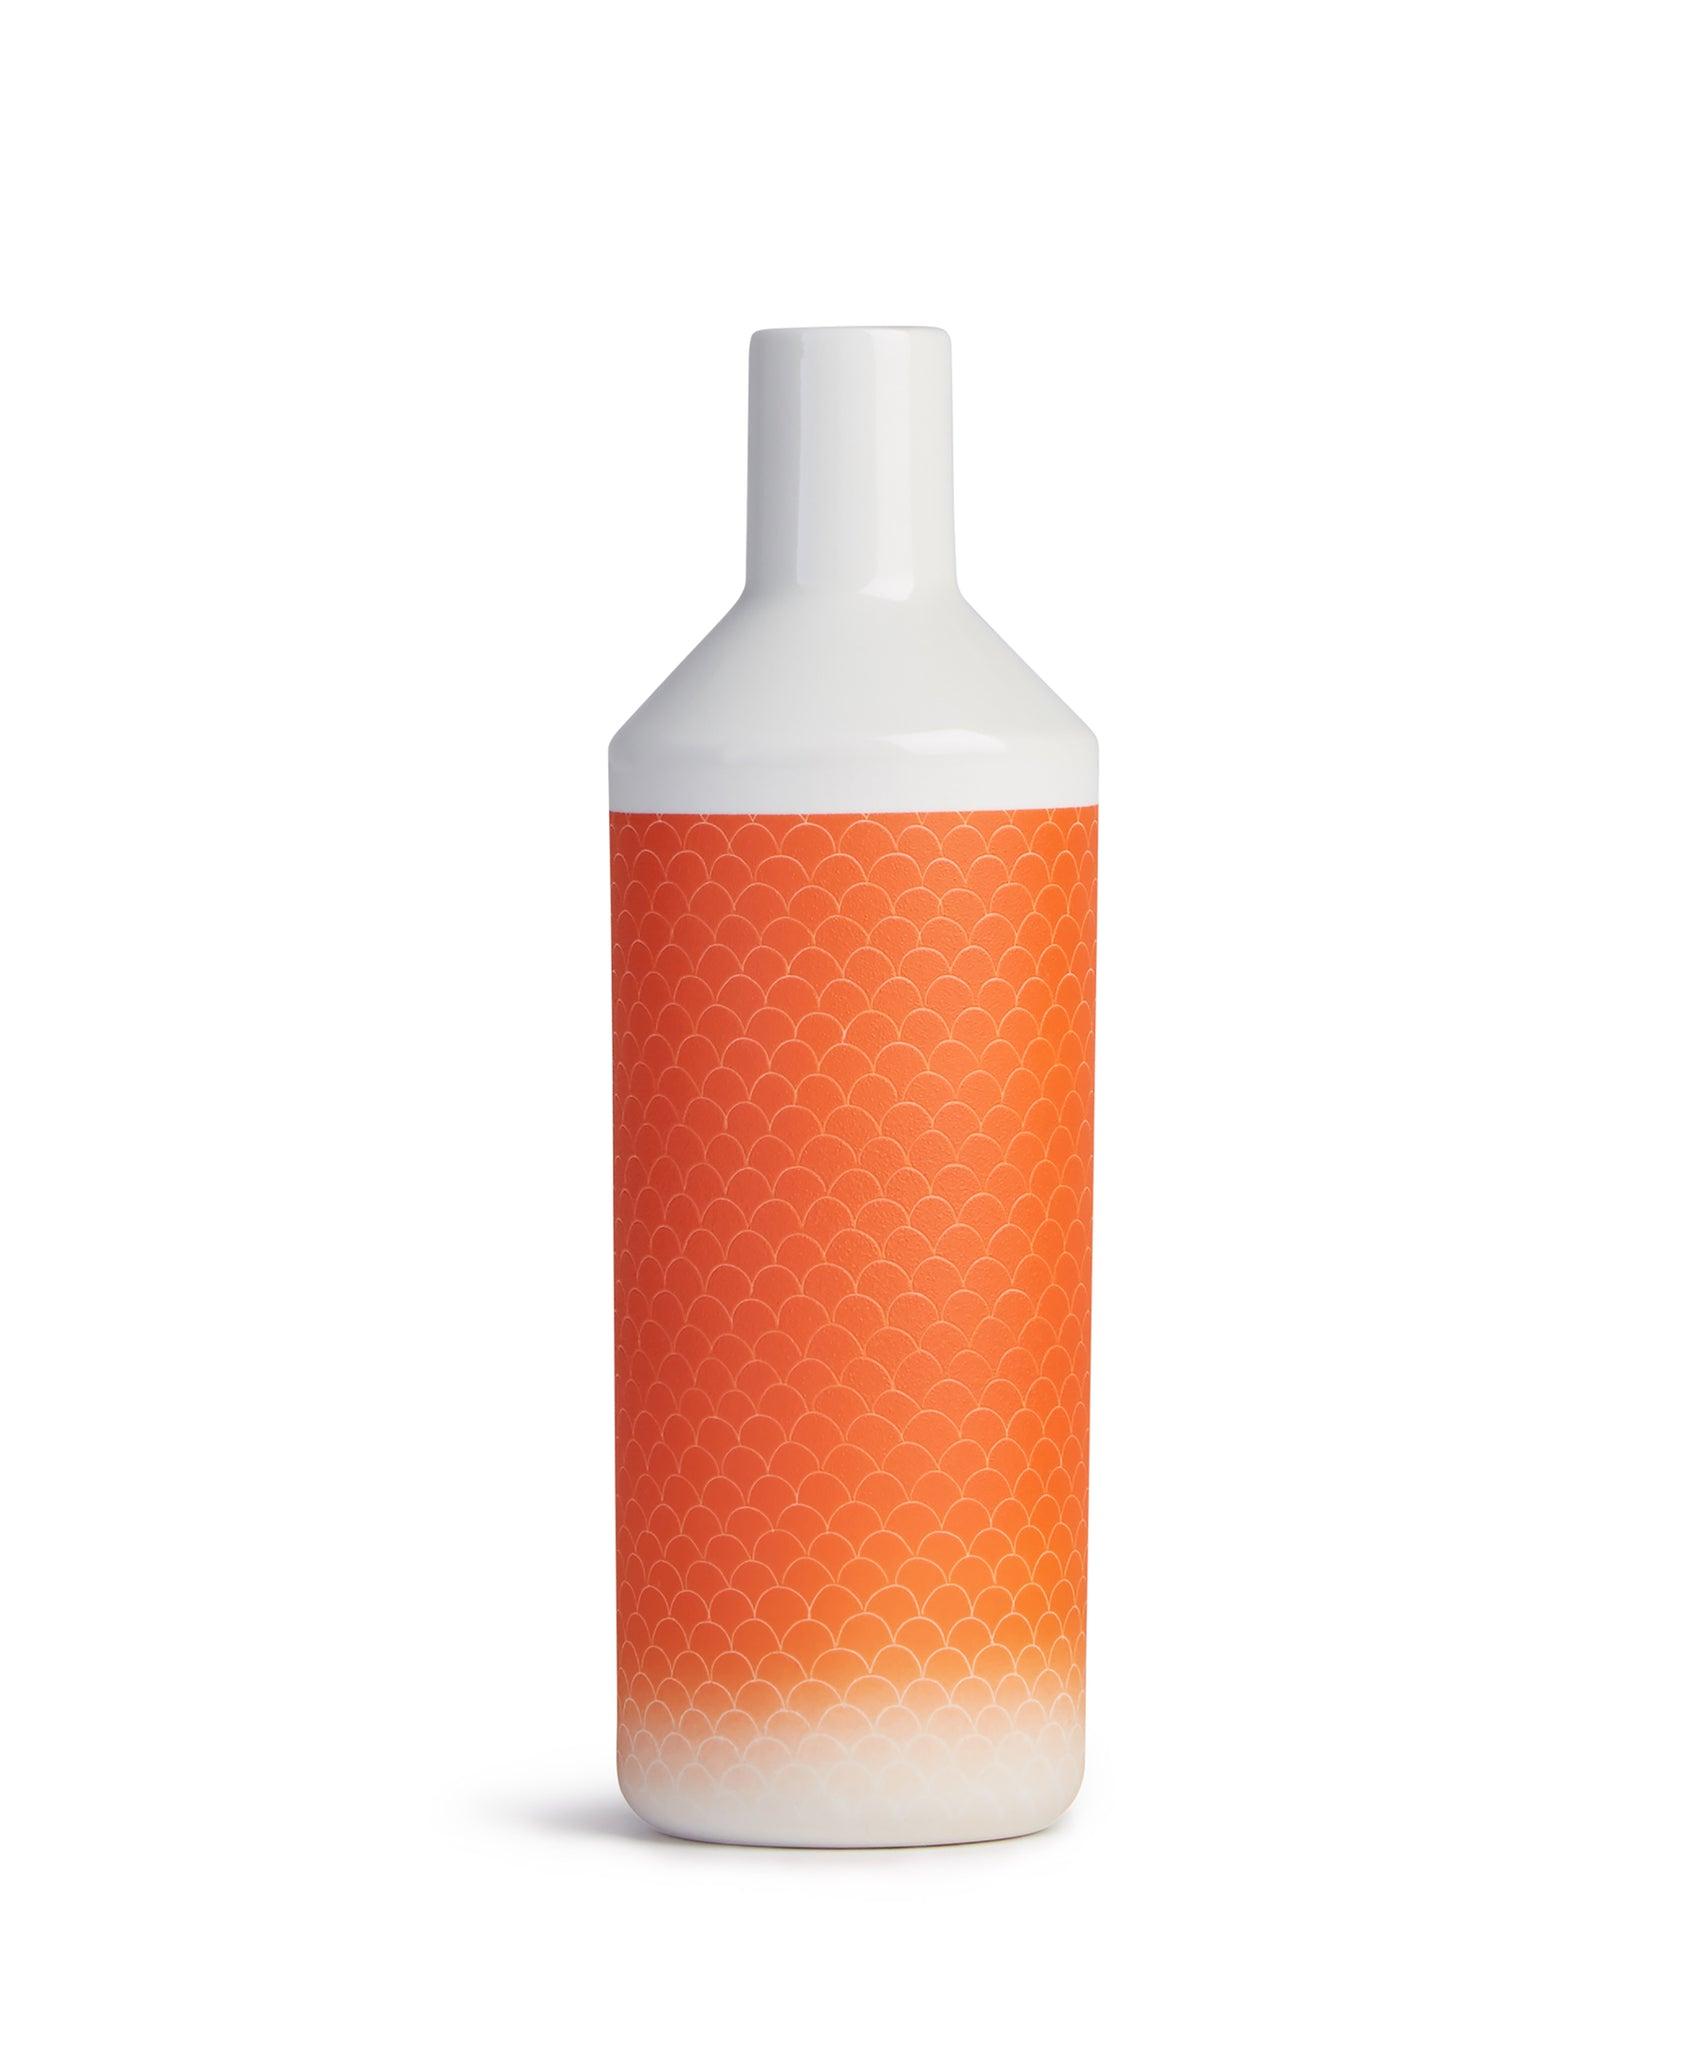 Les Hauts Gradés Bottle Medium - Orange